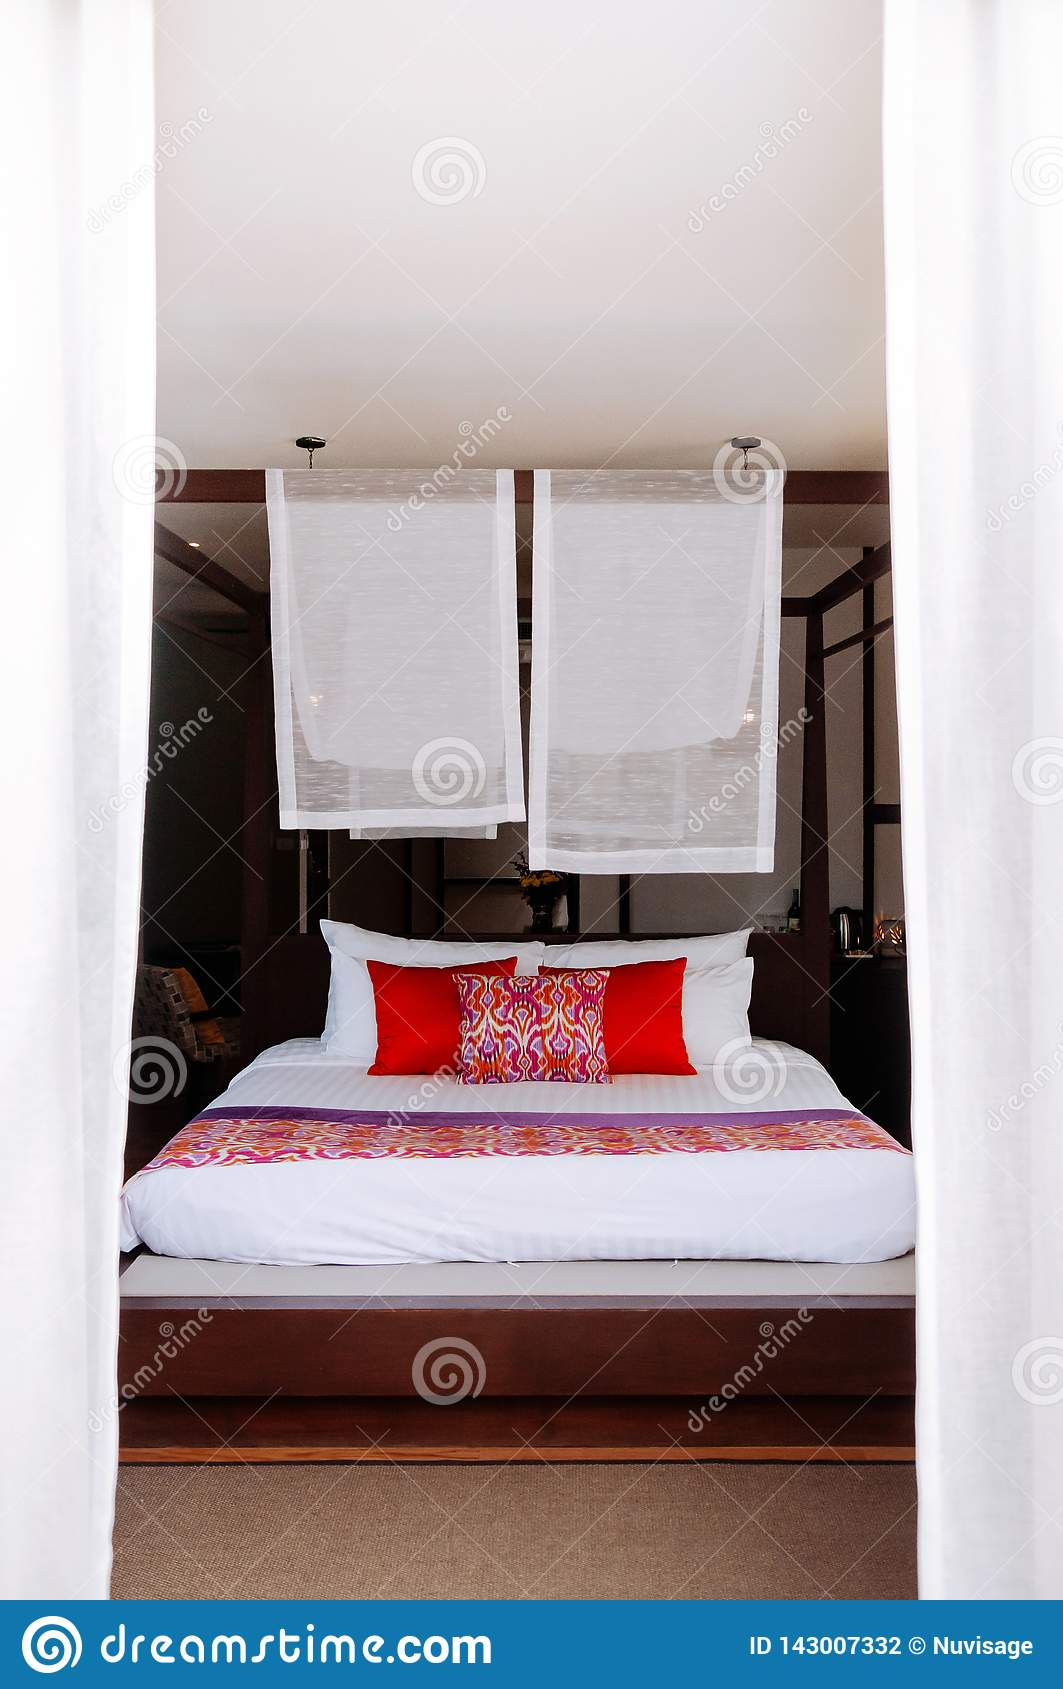 Asian Tropical Hotel Room With Four Poster Bed Editorial Photography Image Of Modern Light 143007332